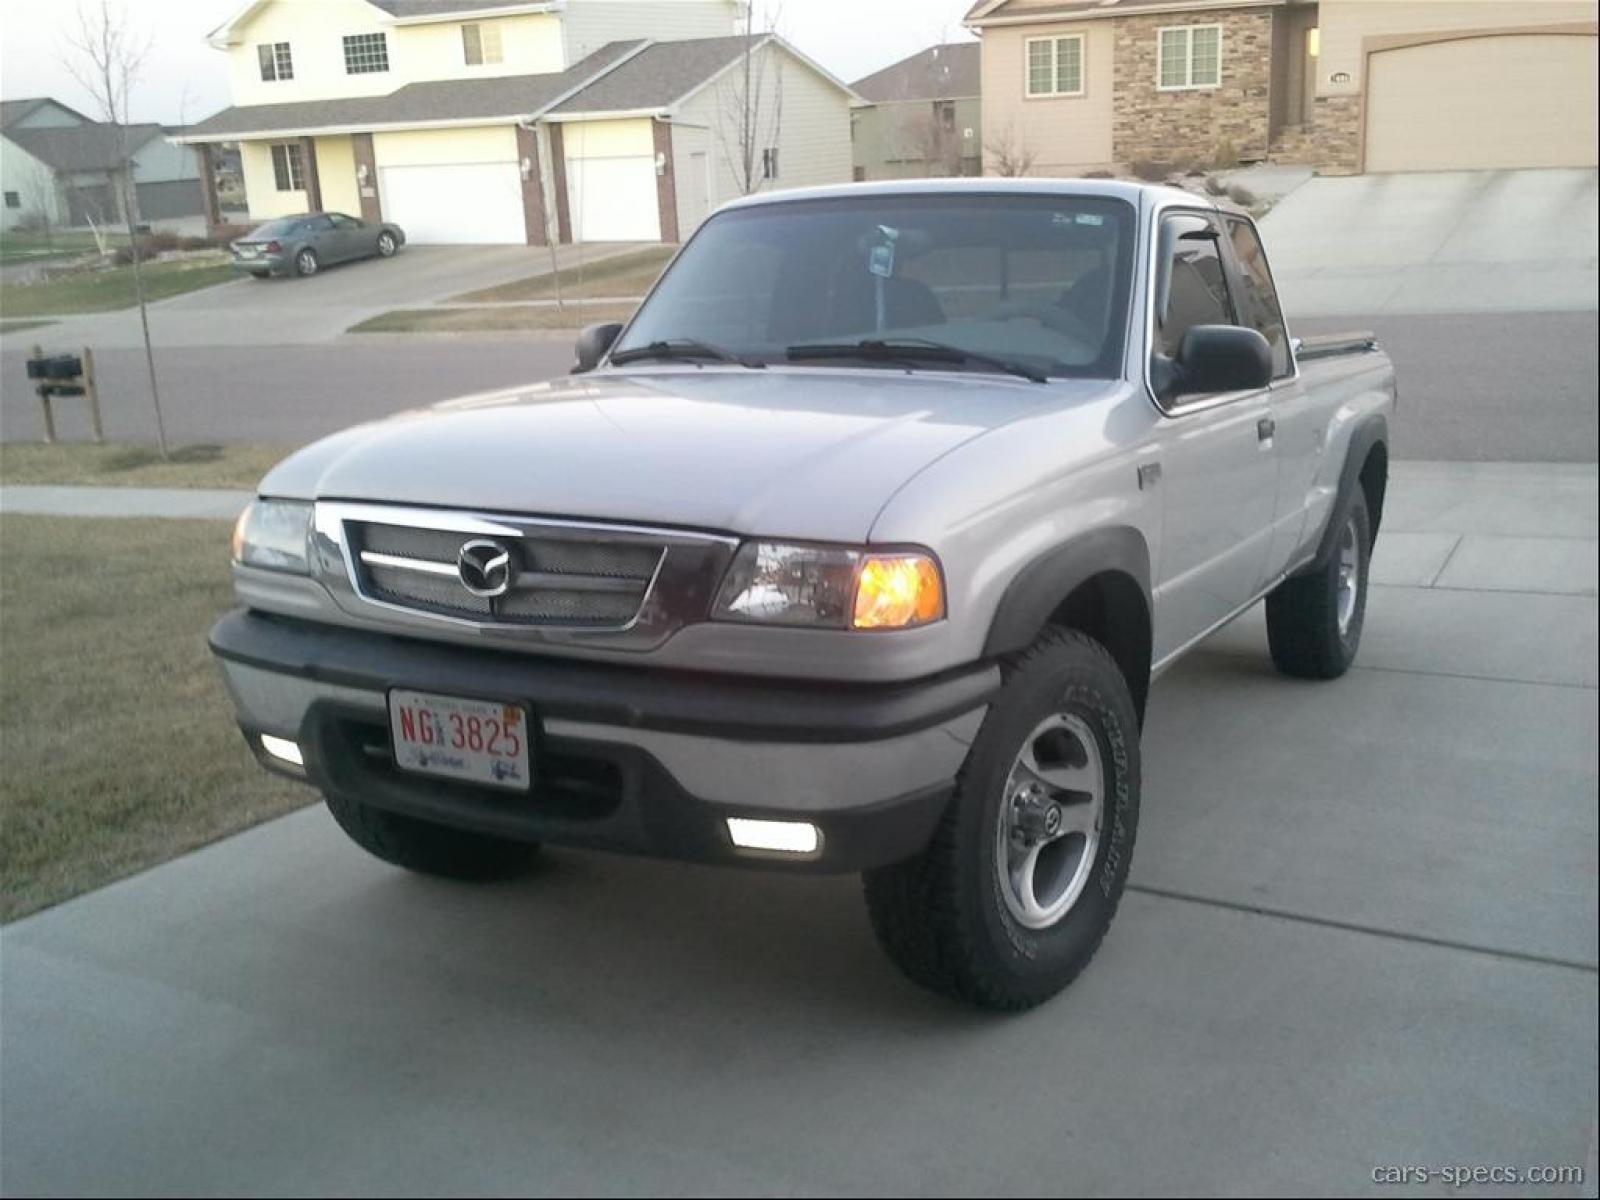 1998 Mazda B Series Pickup Information And Photos Zombiedrive B2500 Engine 800 1024 1280 1600 Origin